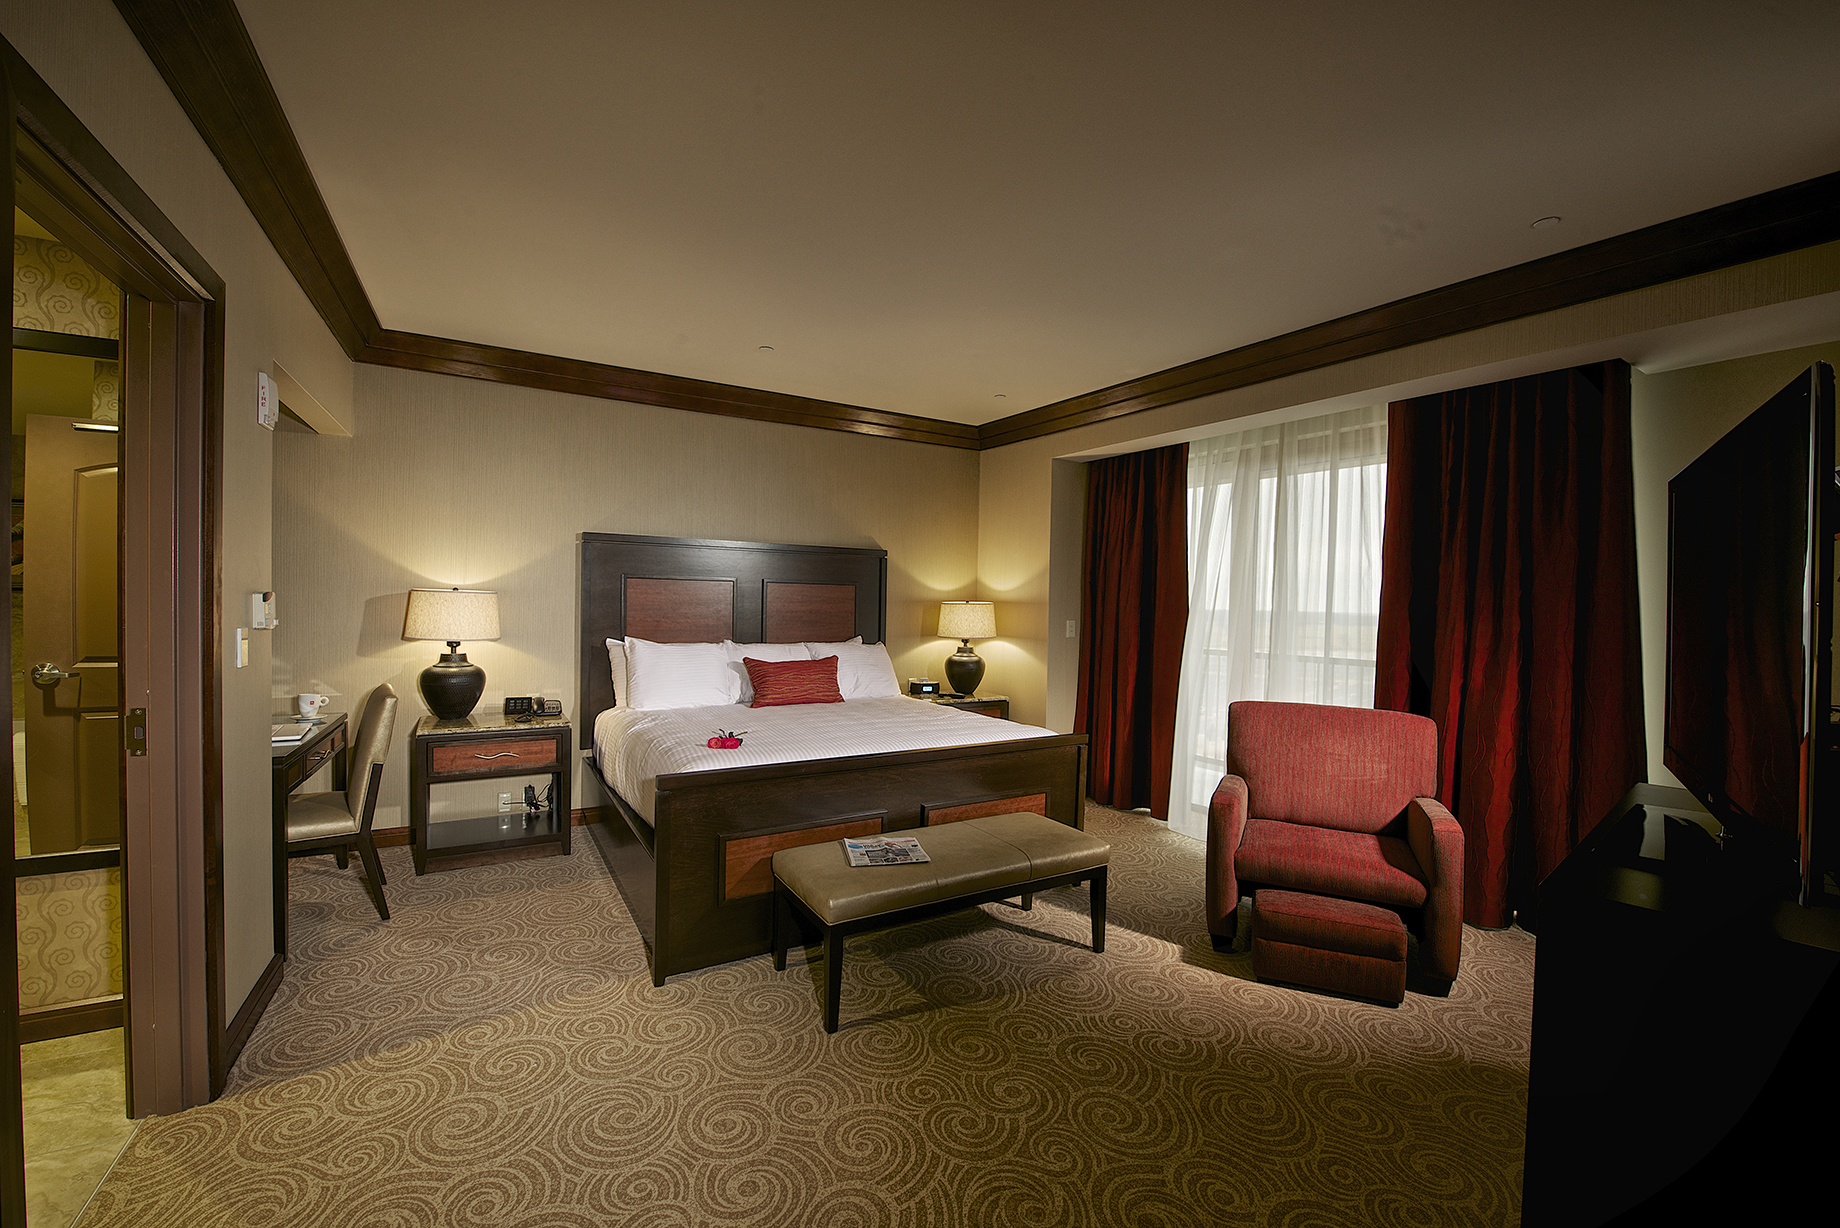 Downstream Casino Expansion Hotel Room